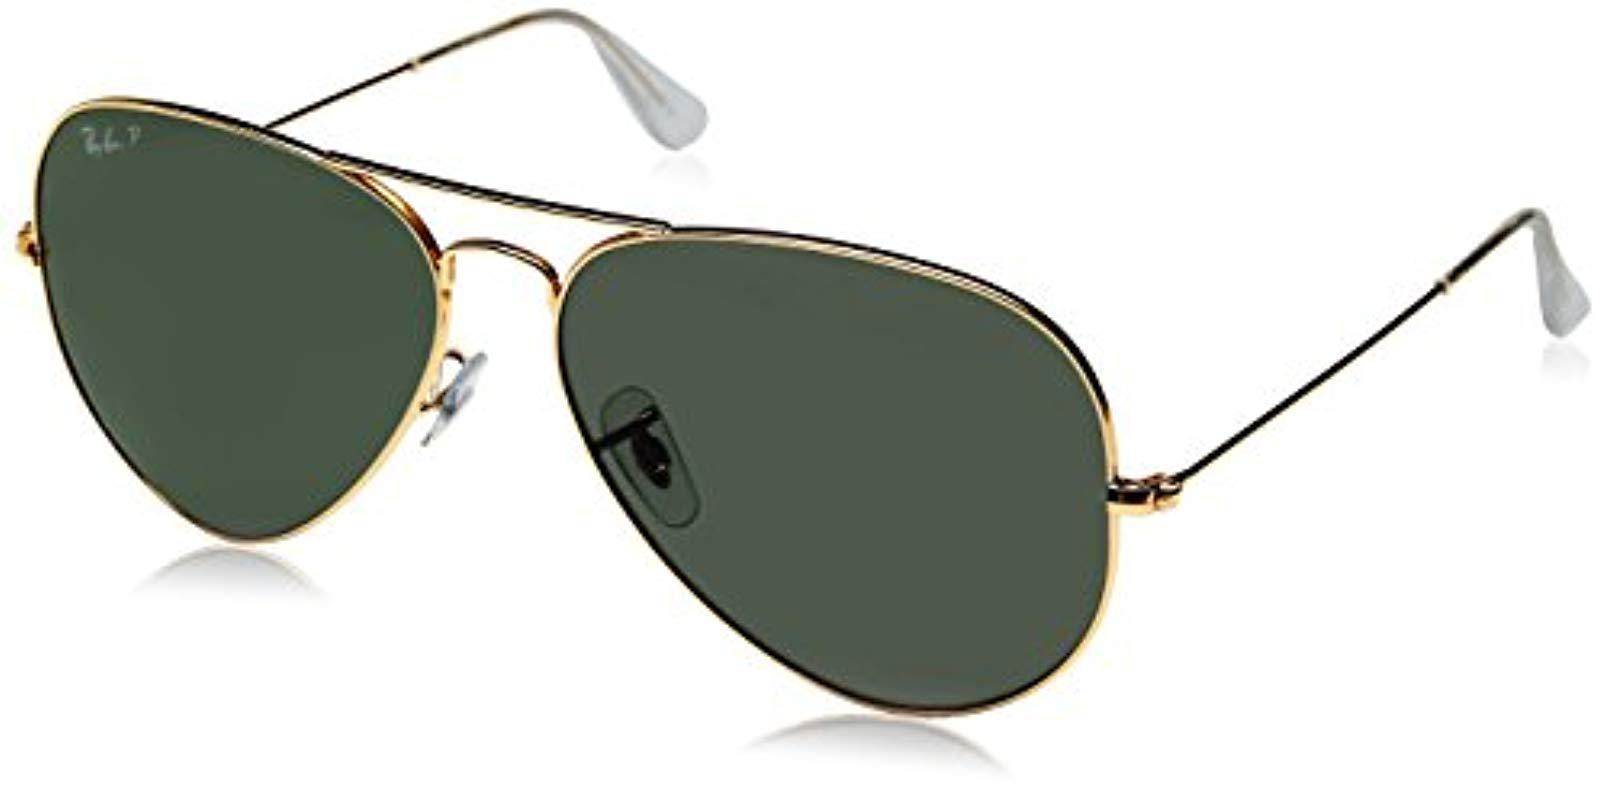 Ray-Ban Rayban Aviator With Gold Mirror Lense And Gold Frame Unisex ... 8065b515e6f8